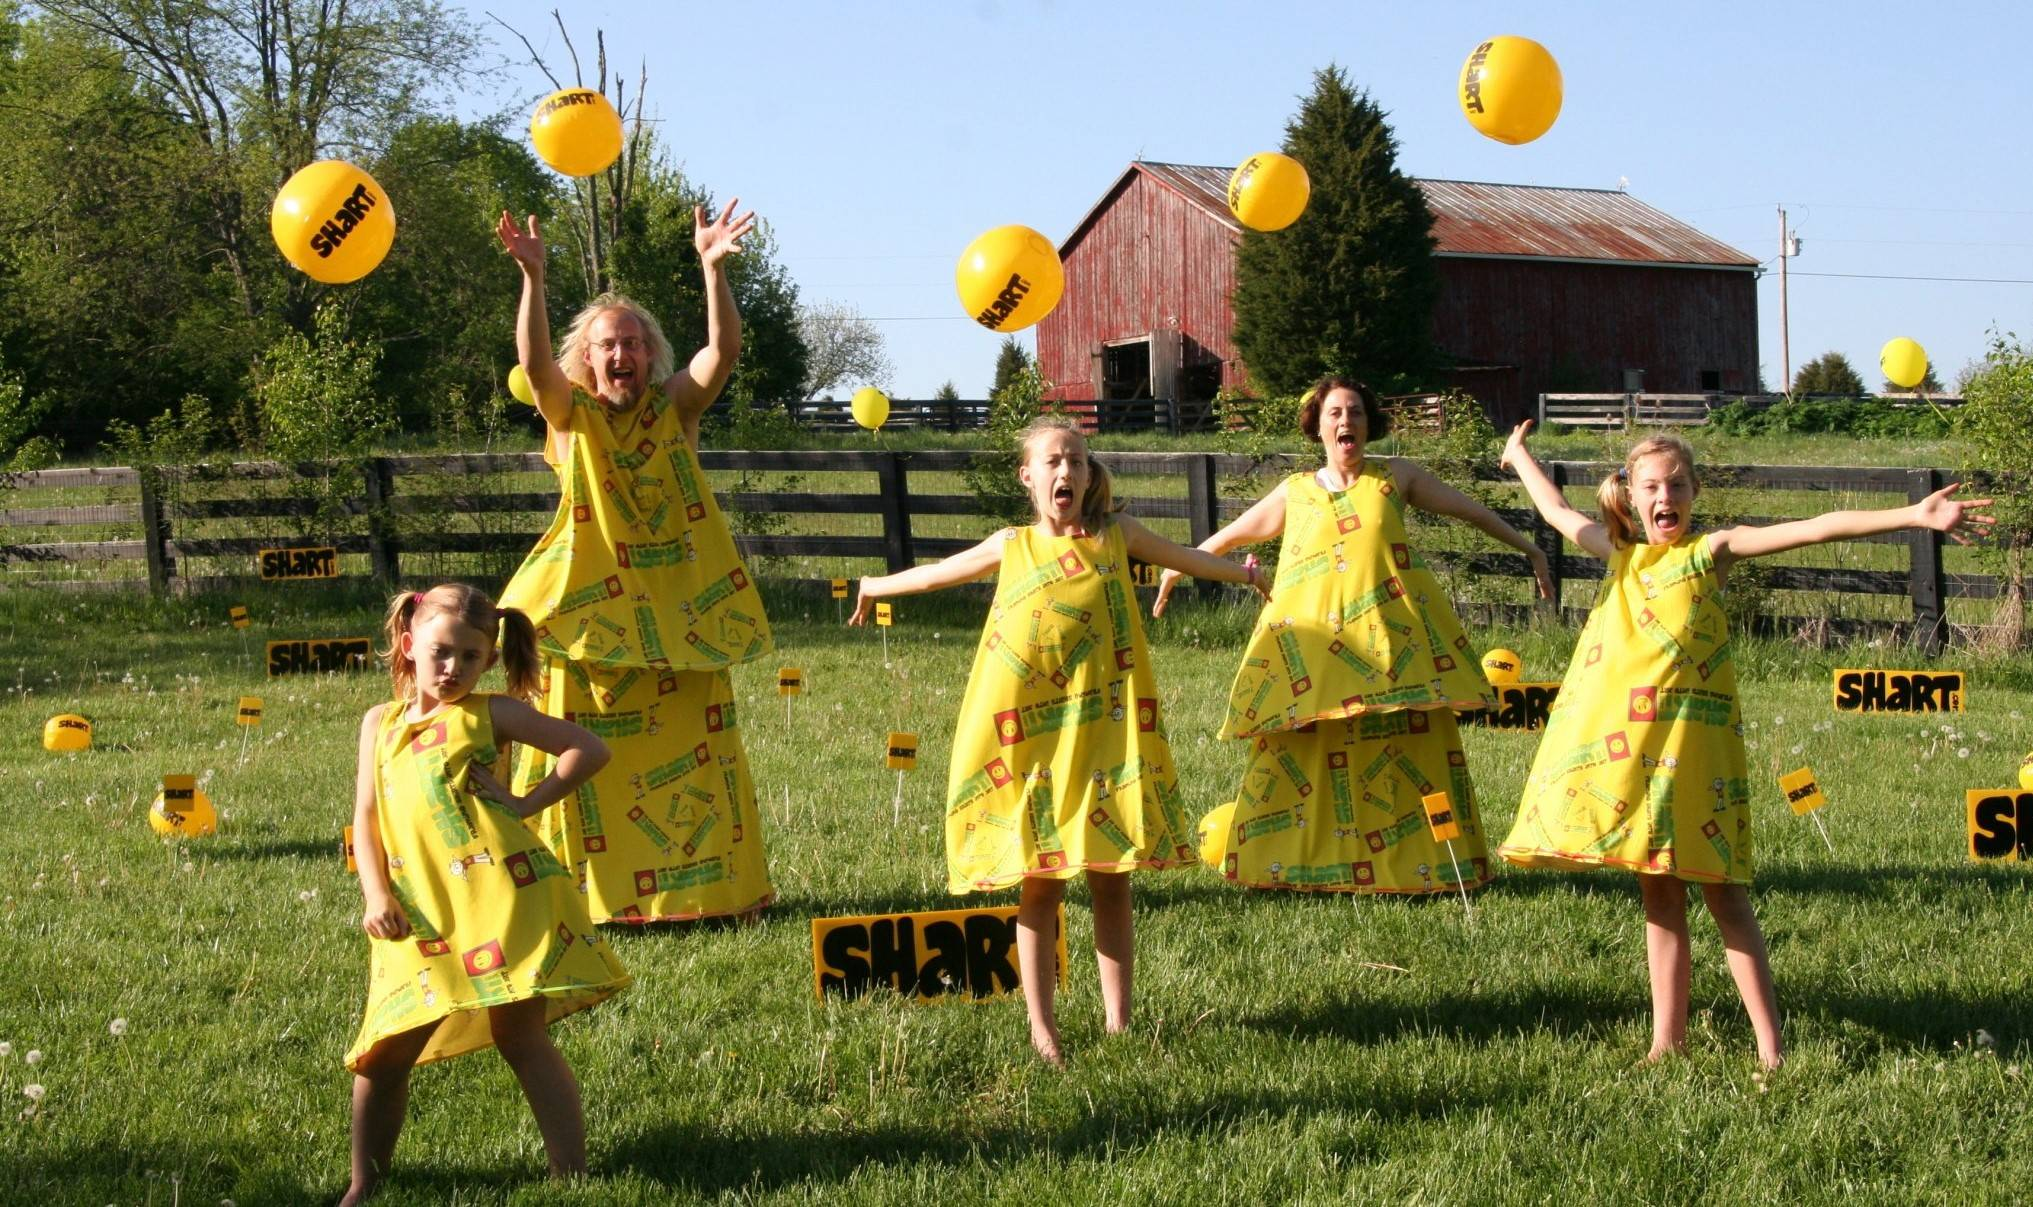 The Shart Family in large yellow dresses jumping up  and celebrating the grand opening of Shart.com